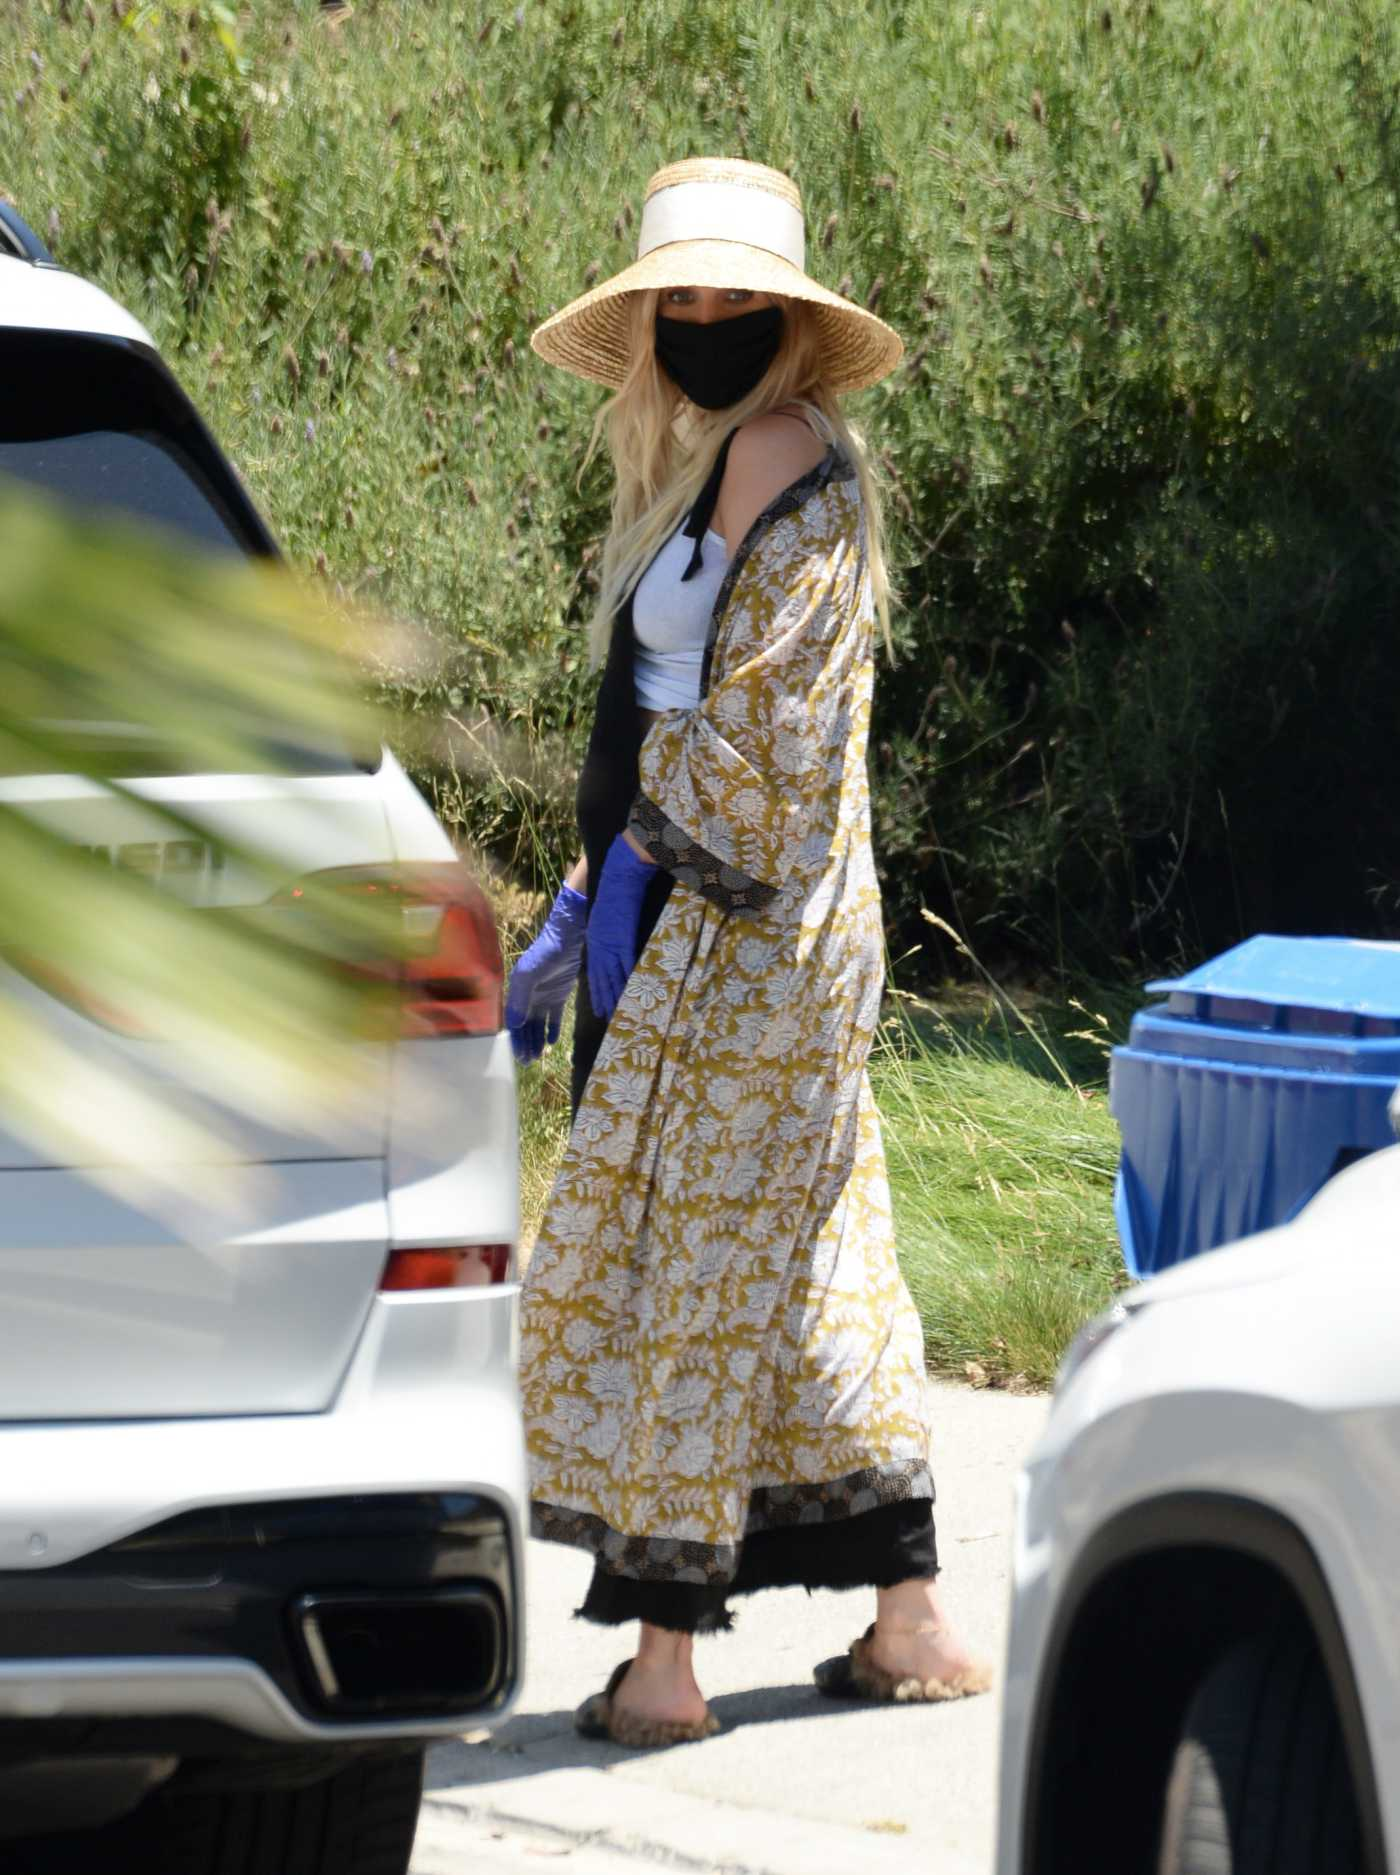 Ashlee Simpson in a Straw Hat Arrives at Don Cuco Mexican Restaurant Out with Her Husband Evan Ross in Los Angeles 06/15/2020